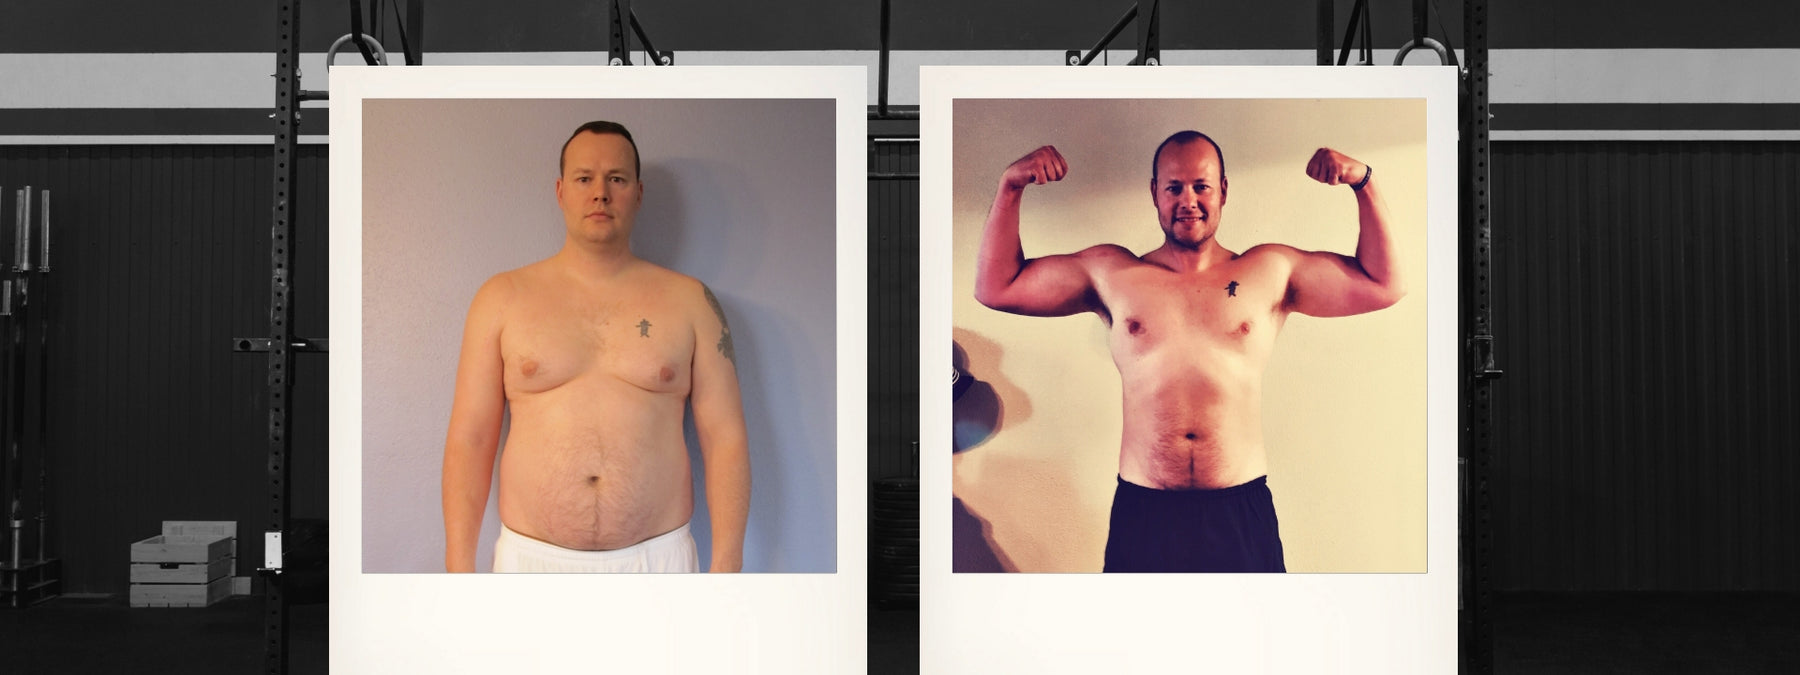 Army Vet Cory Sanden Was Shocked to Hit 300 Pounds